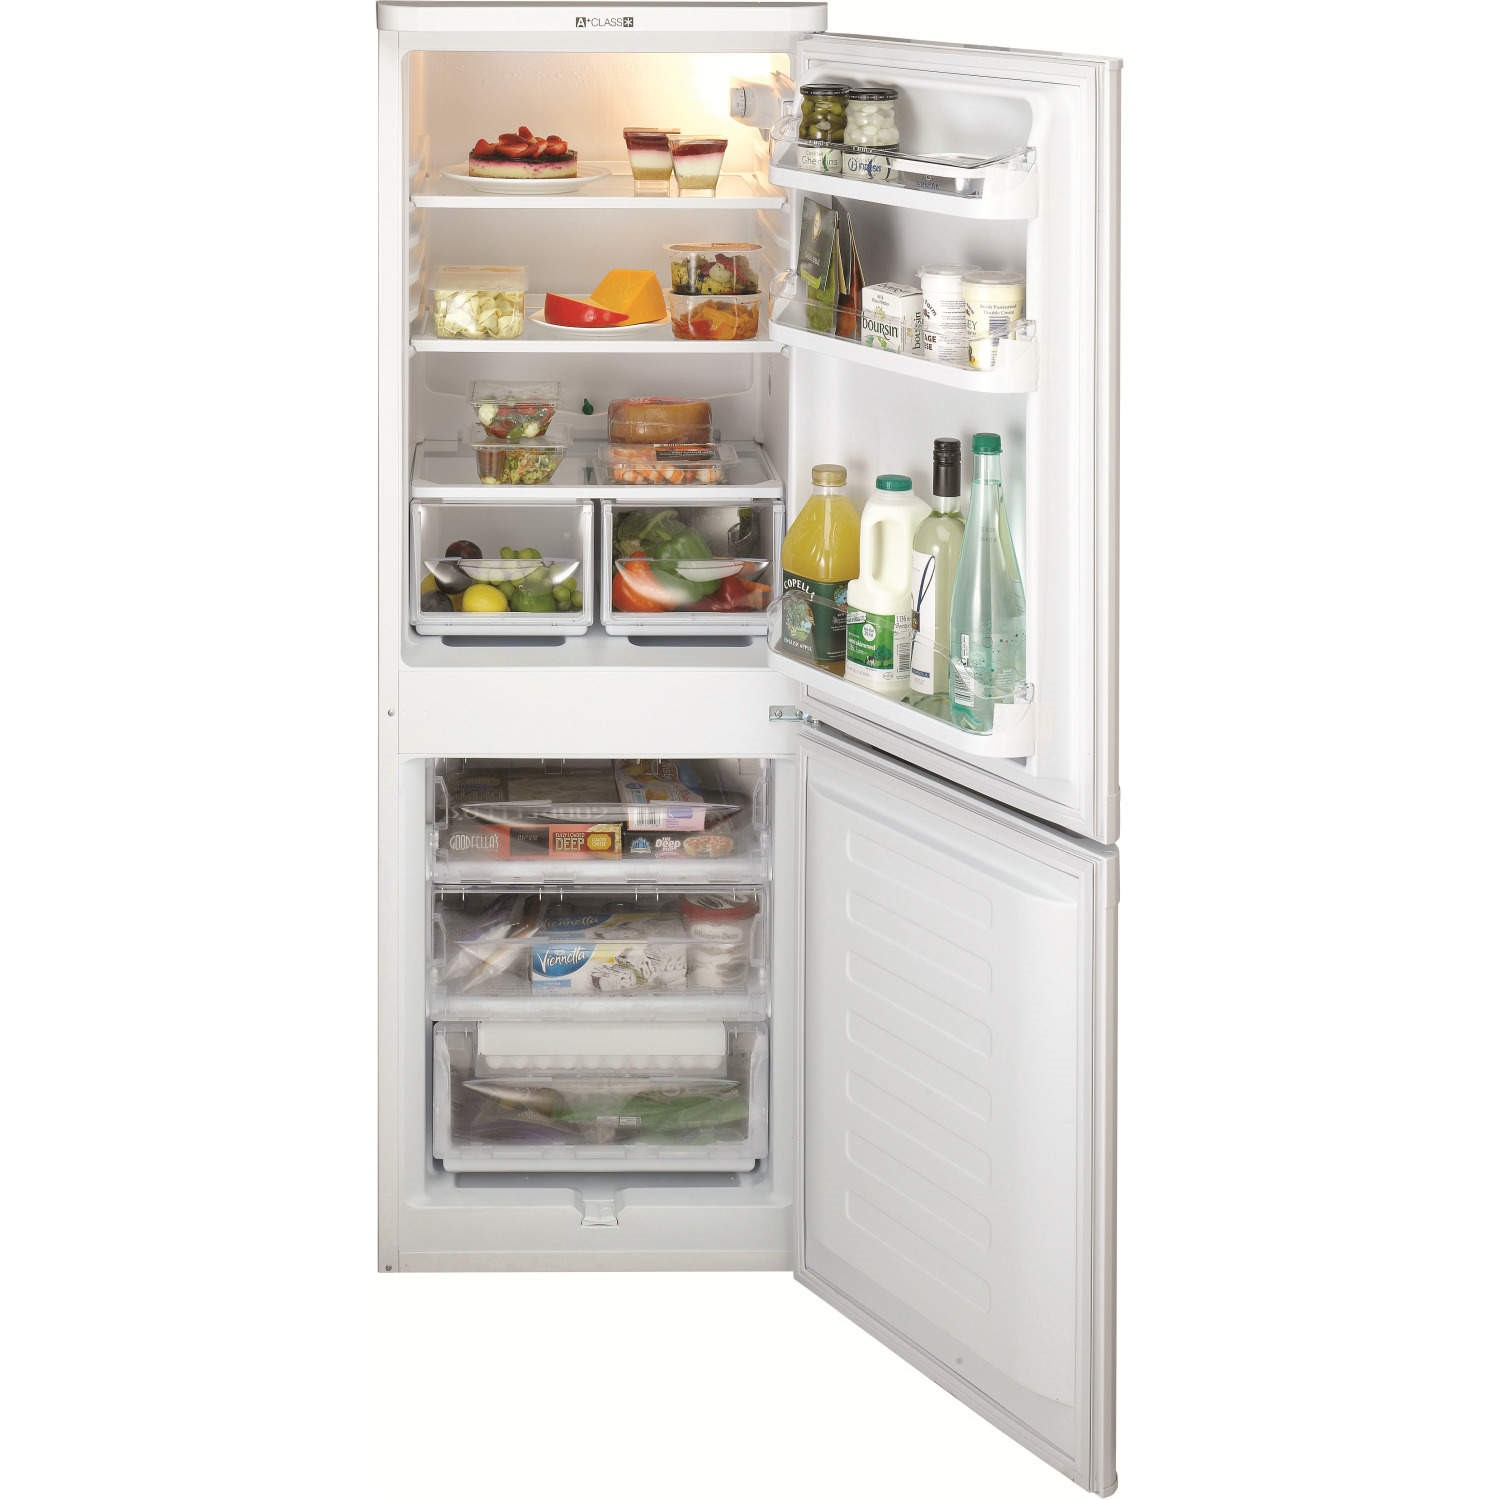 Indesit Ncaa55 157x55cm Freestanding Fridge Freezer White Appliances Direct